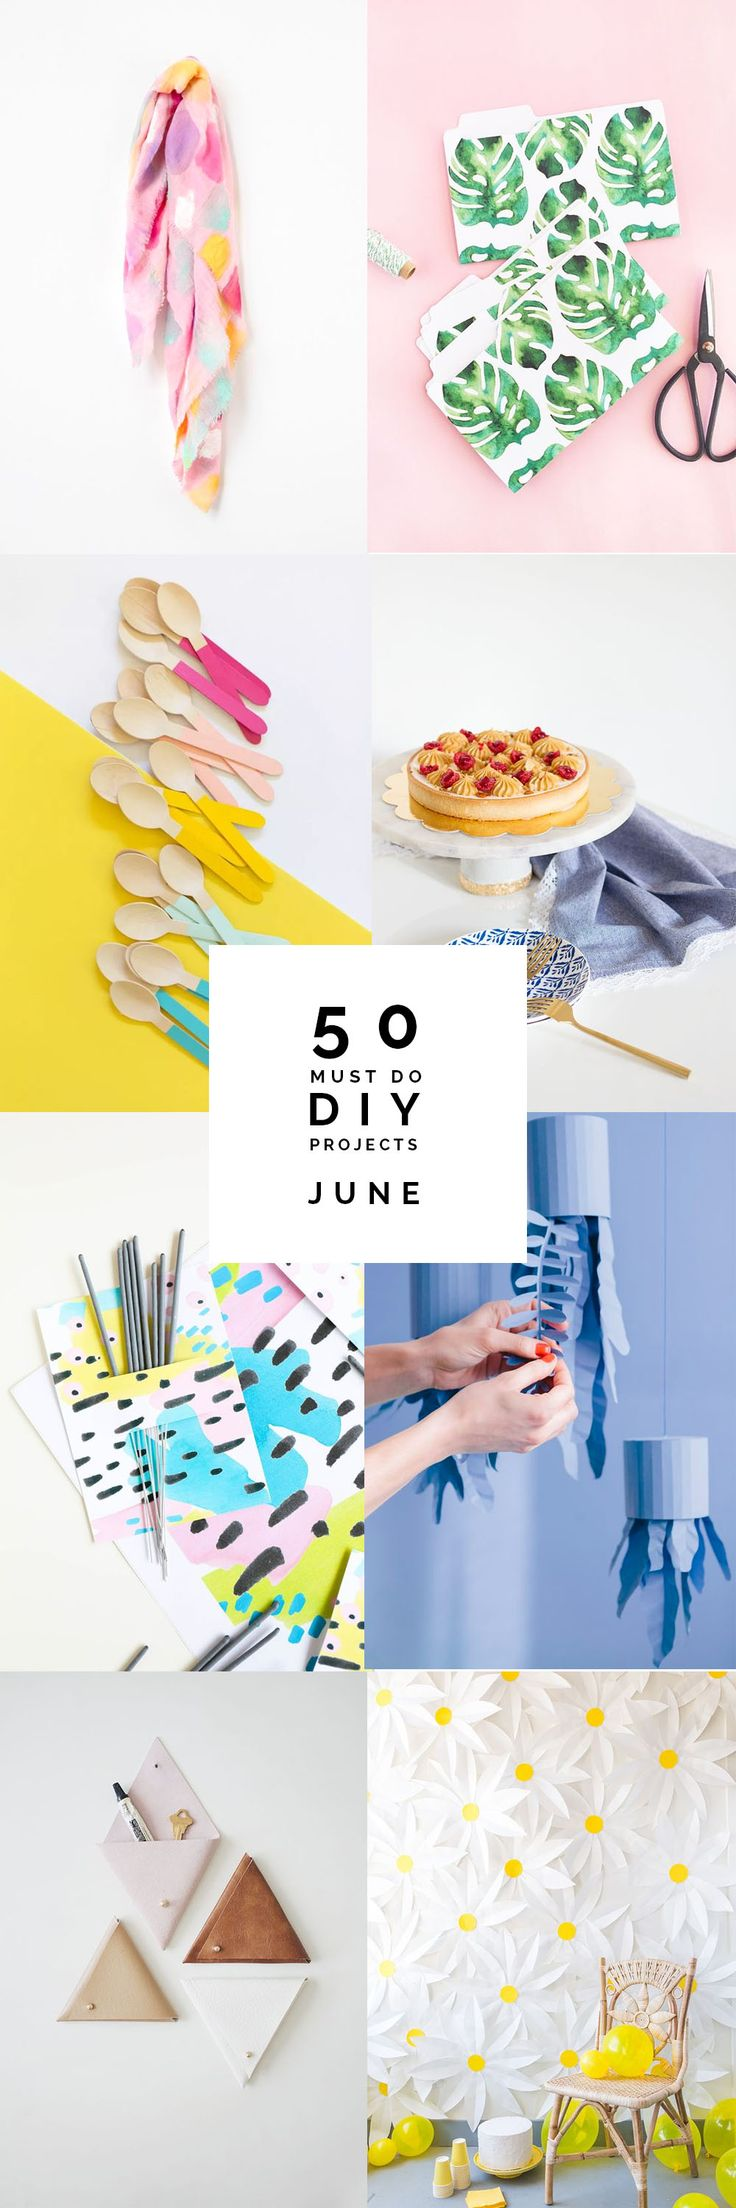 It's that time again. Happy July!I'm excited tostart a fresh new month and I'm getting some summer inspiration rounding up all these gorgeous DIY things that have been posted over the last 30 days. I've been amazed by the ingenuity and originality of all the tutorials I've seen over the past month.I'm feeling so energised …